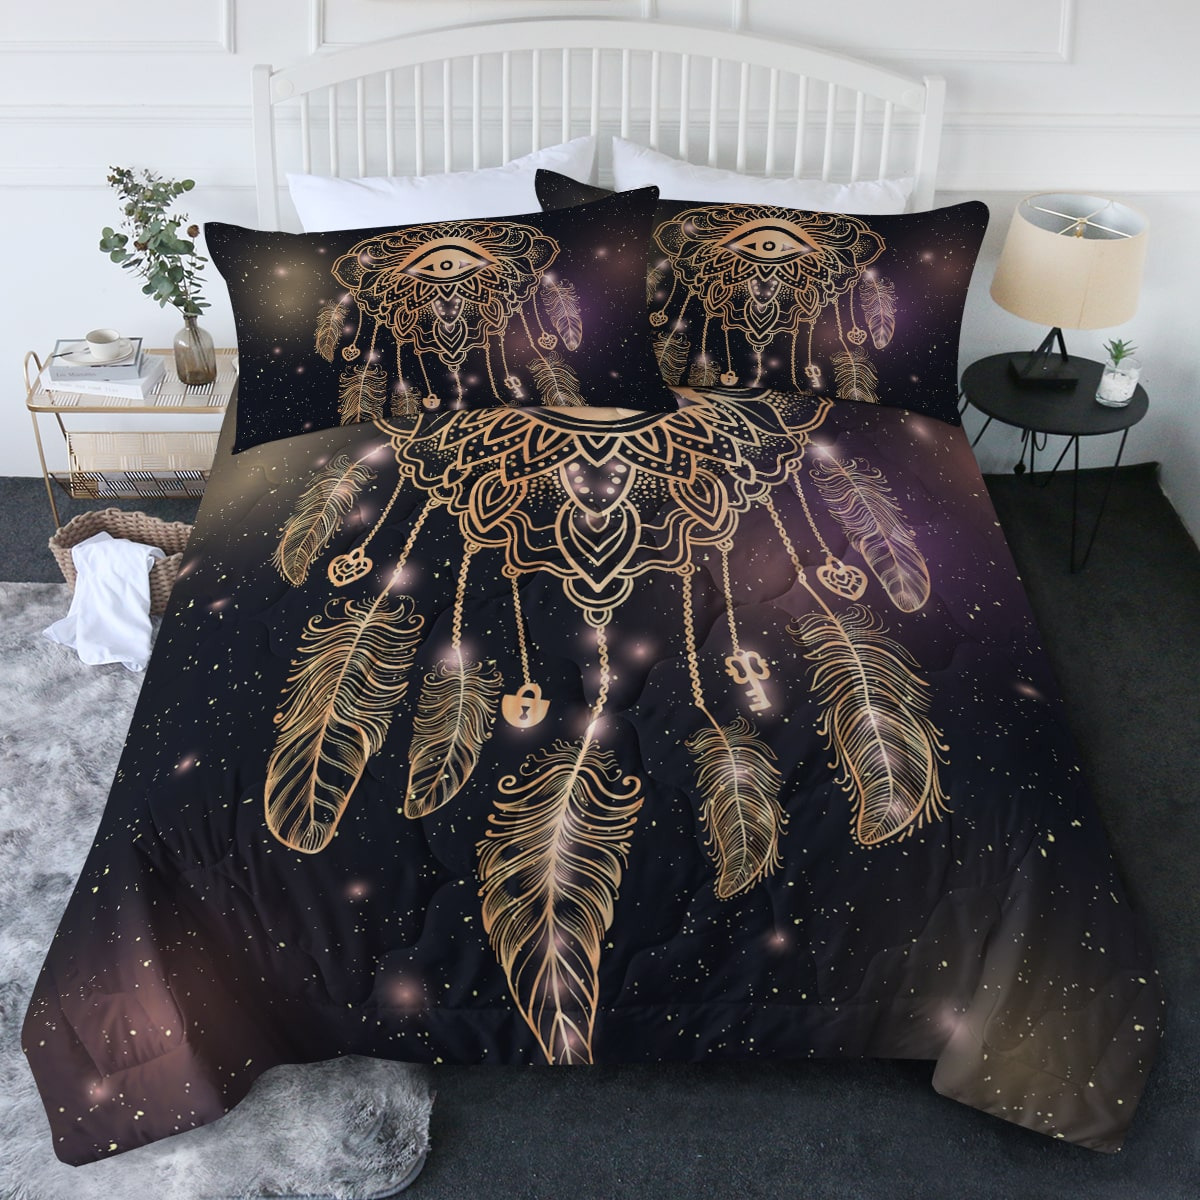 Dreamcatcher Black Comforter Bedding Set